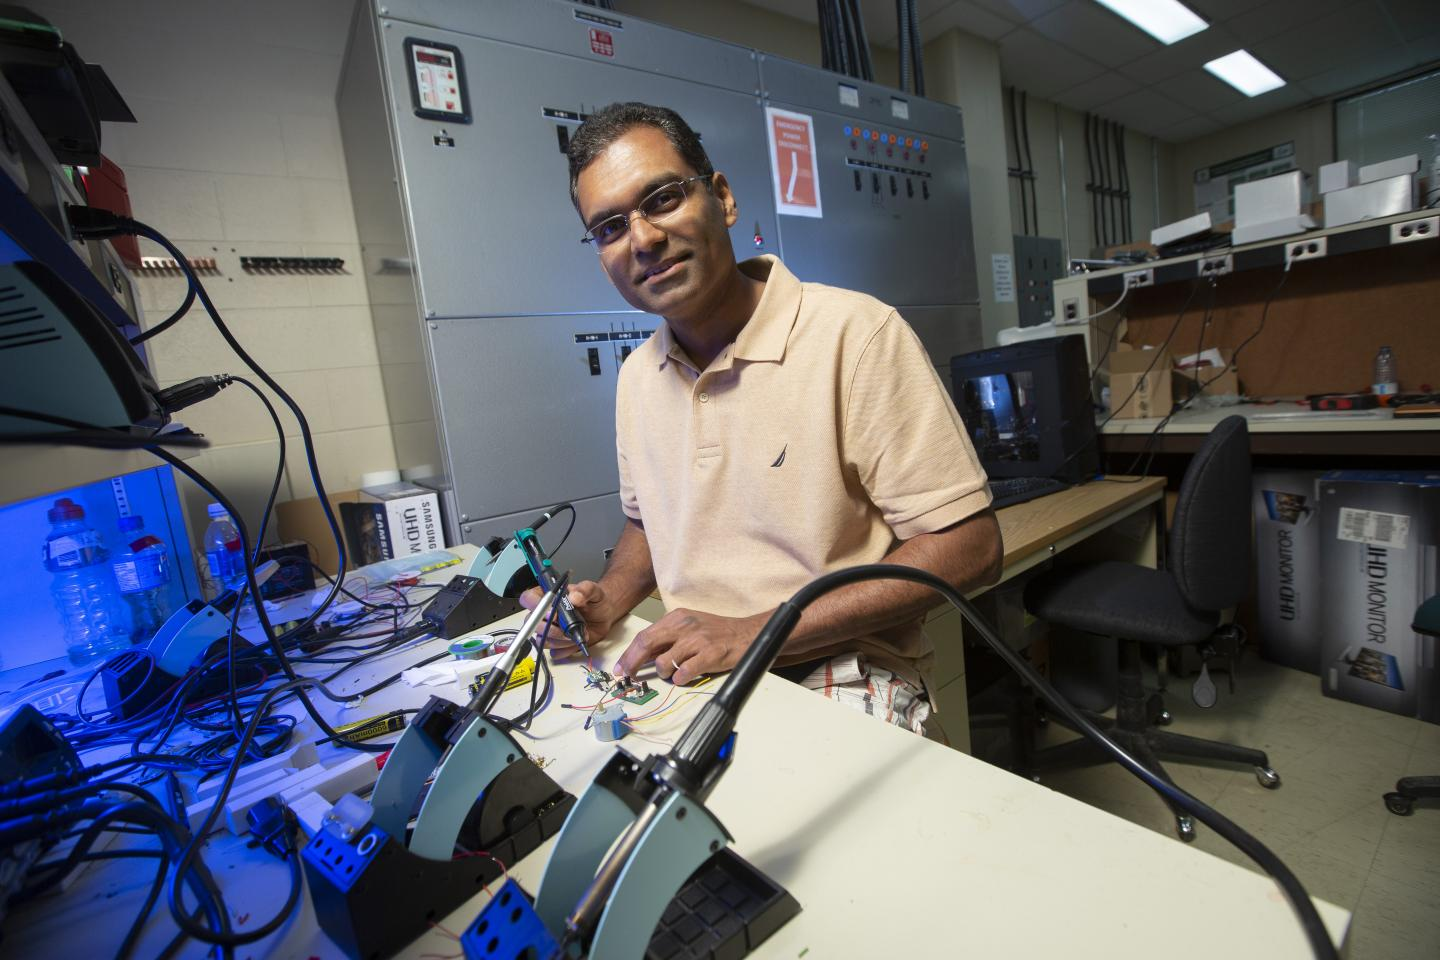 Usask Researcher Khan Wahid at the Lab Bench